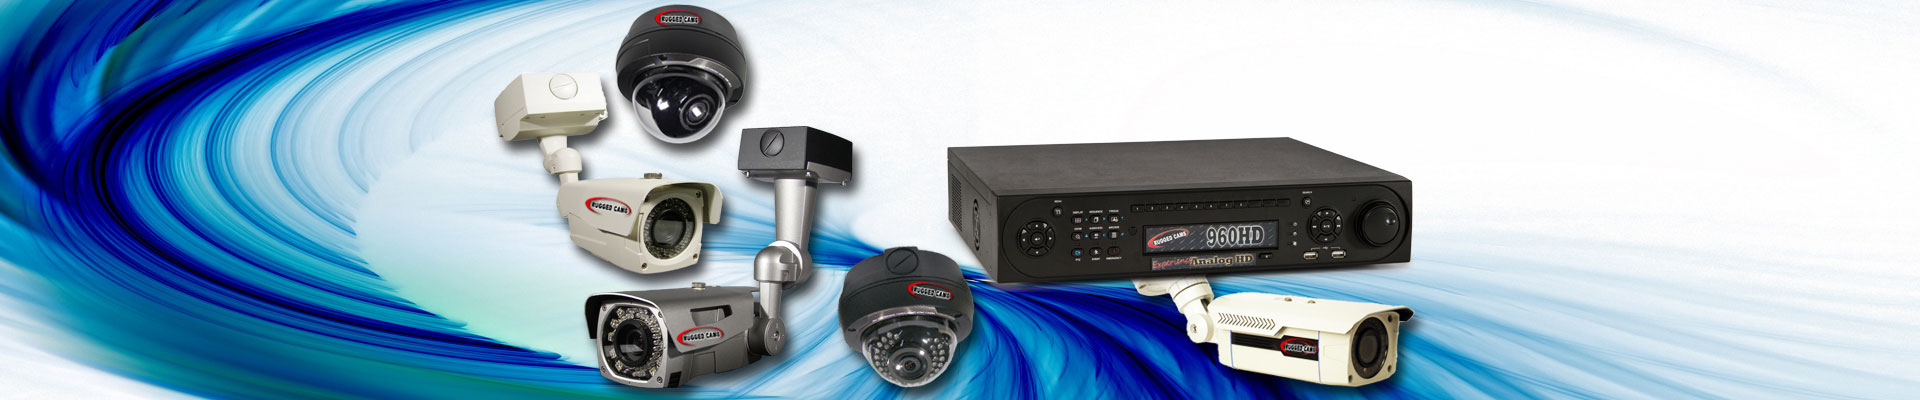 960HD Video Security Equipment page slider image